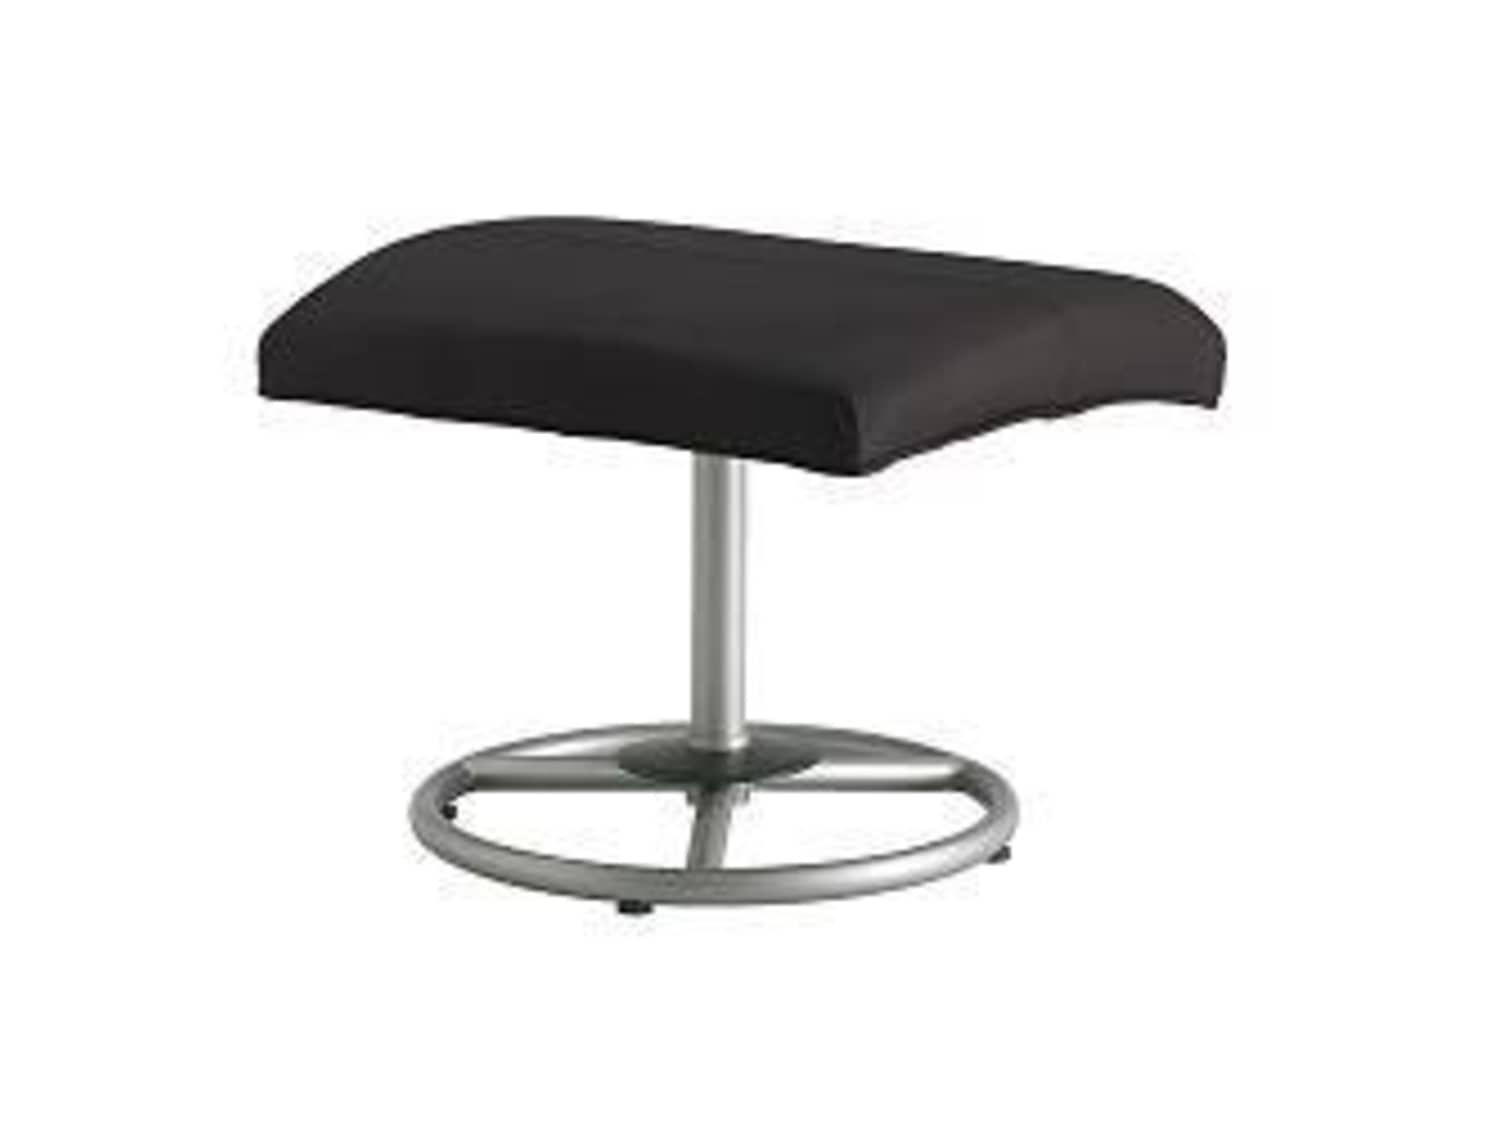 Ikea Malung Swivel Armchair And Footstool Apartment Therapy S